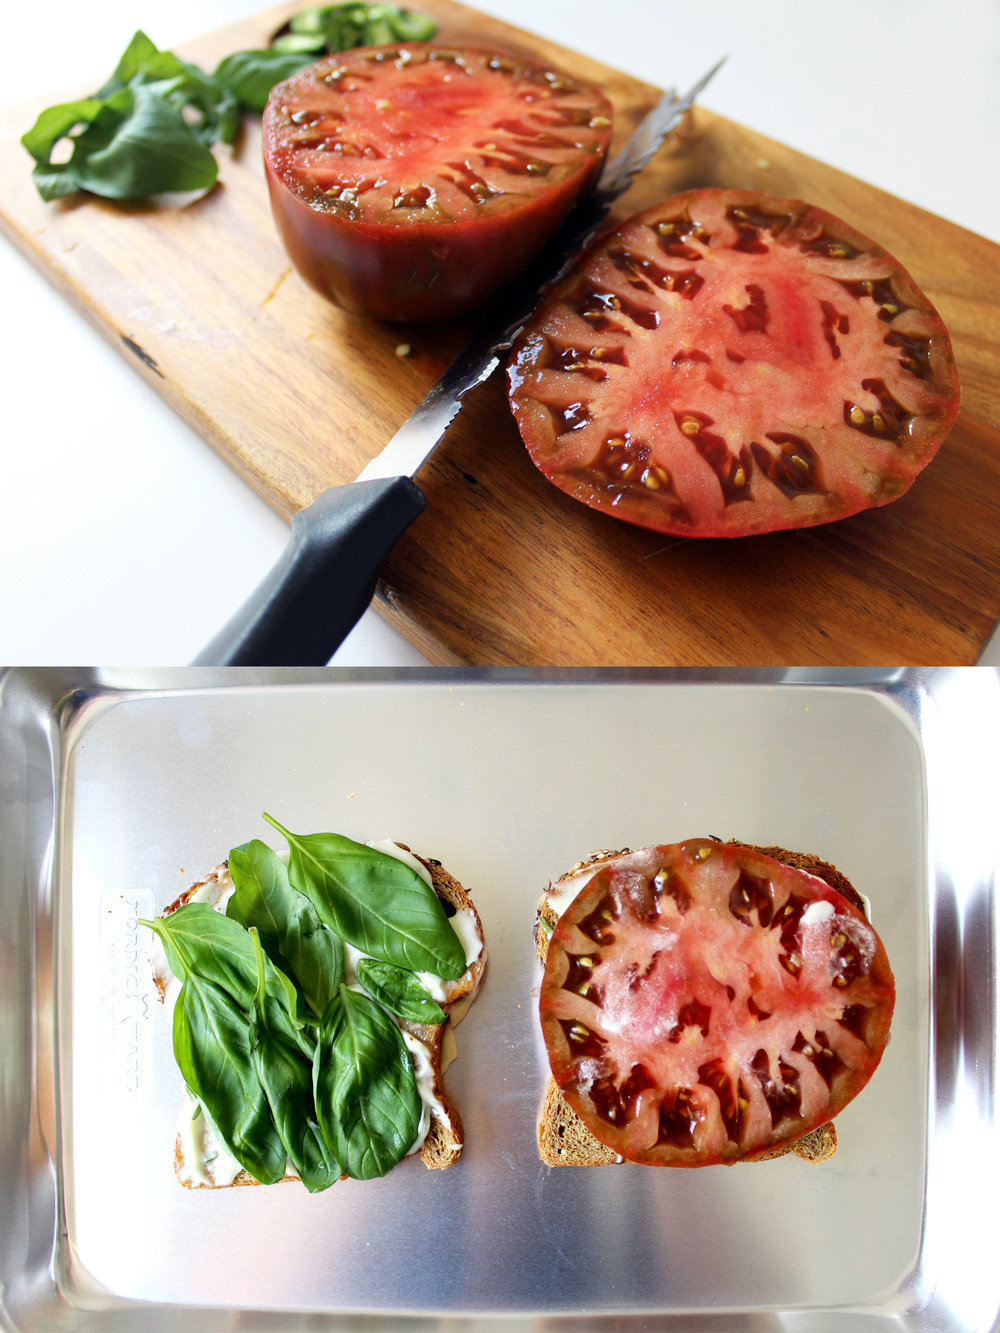 steps for building a spicy tomato sandwich with heirloom tomato and basil